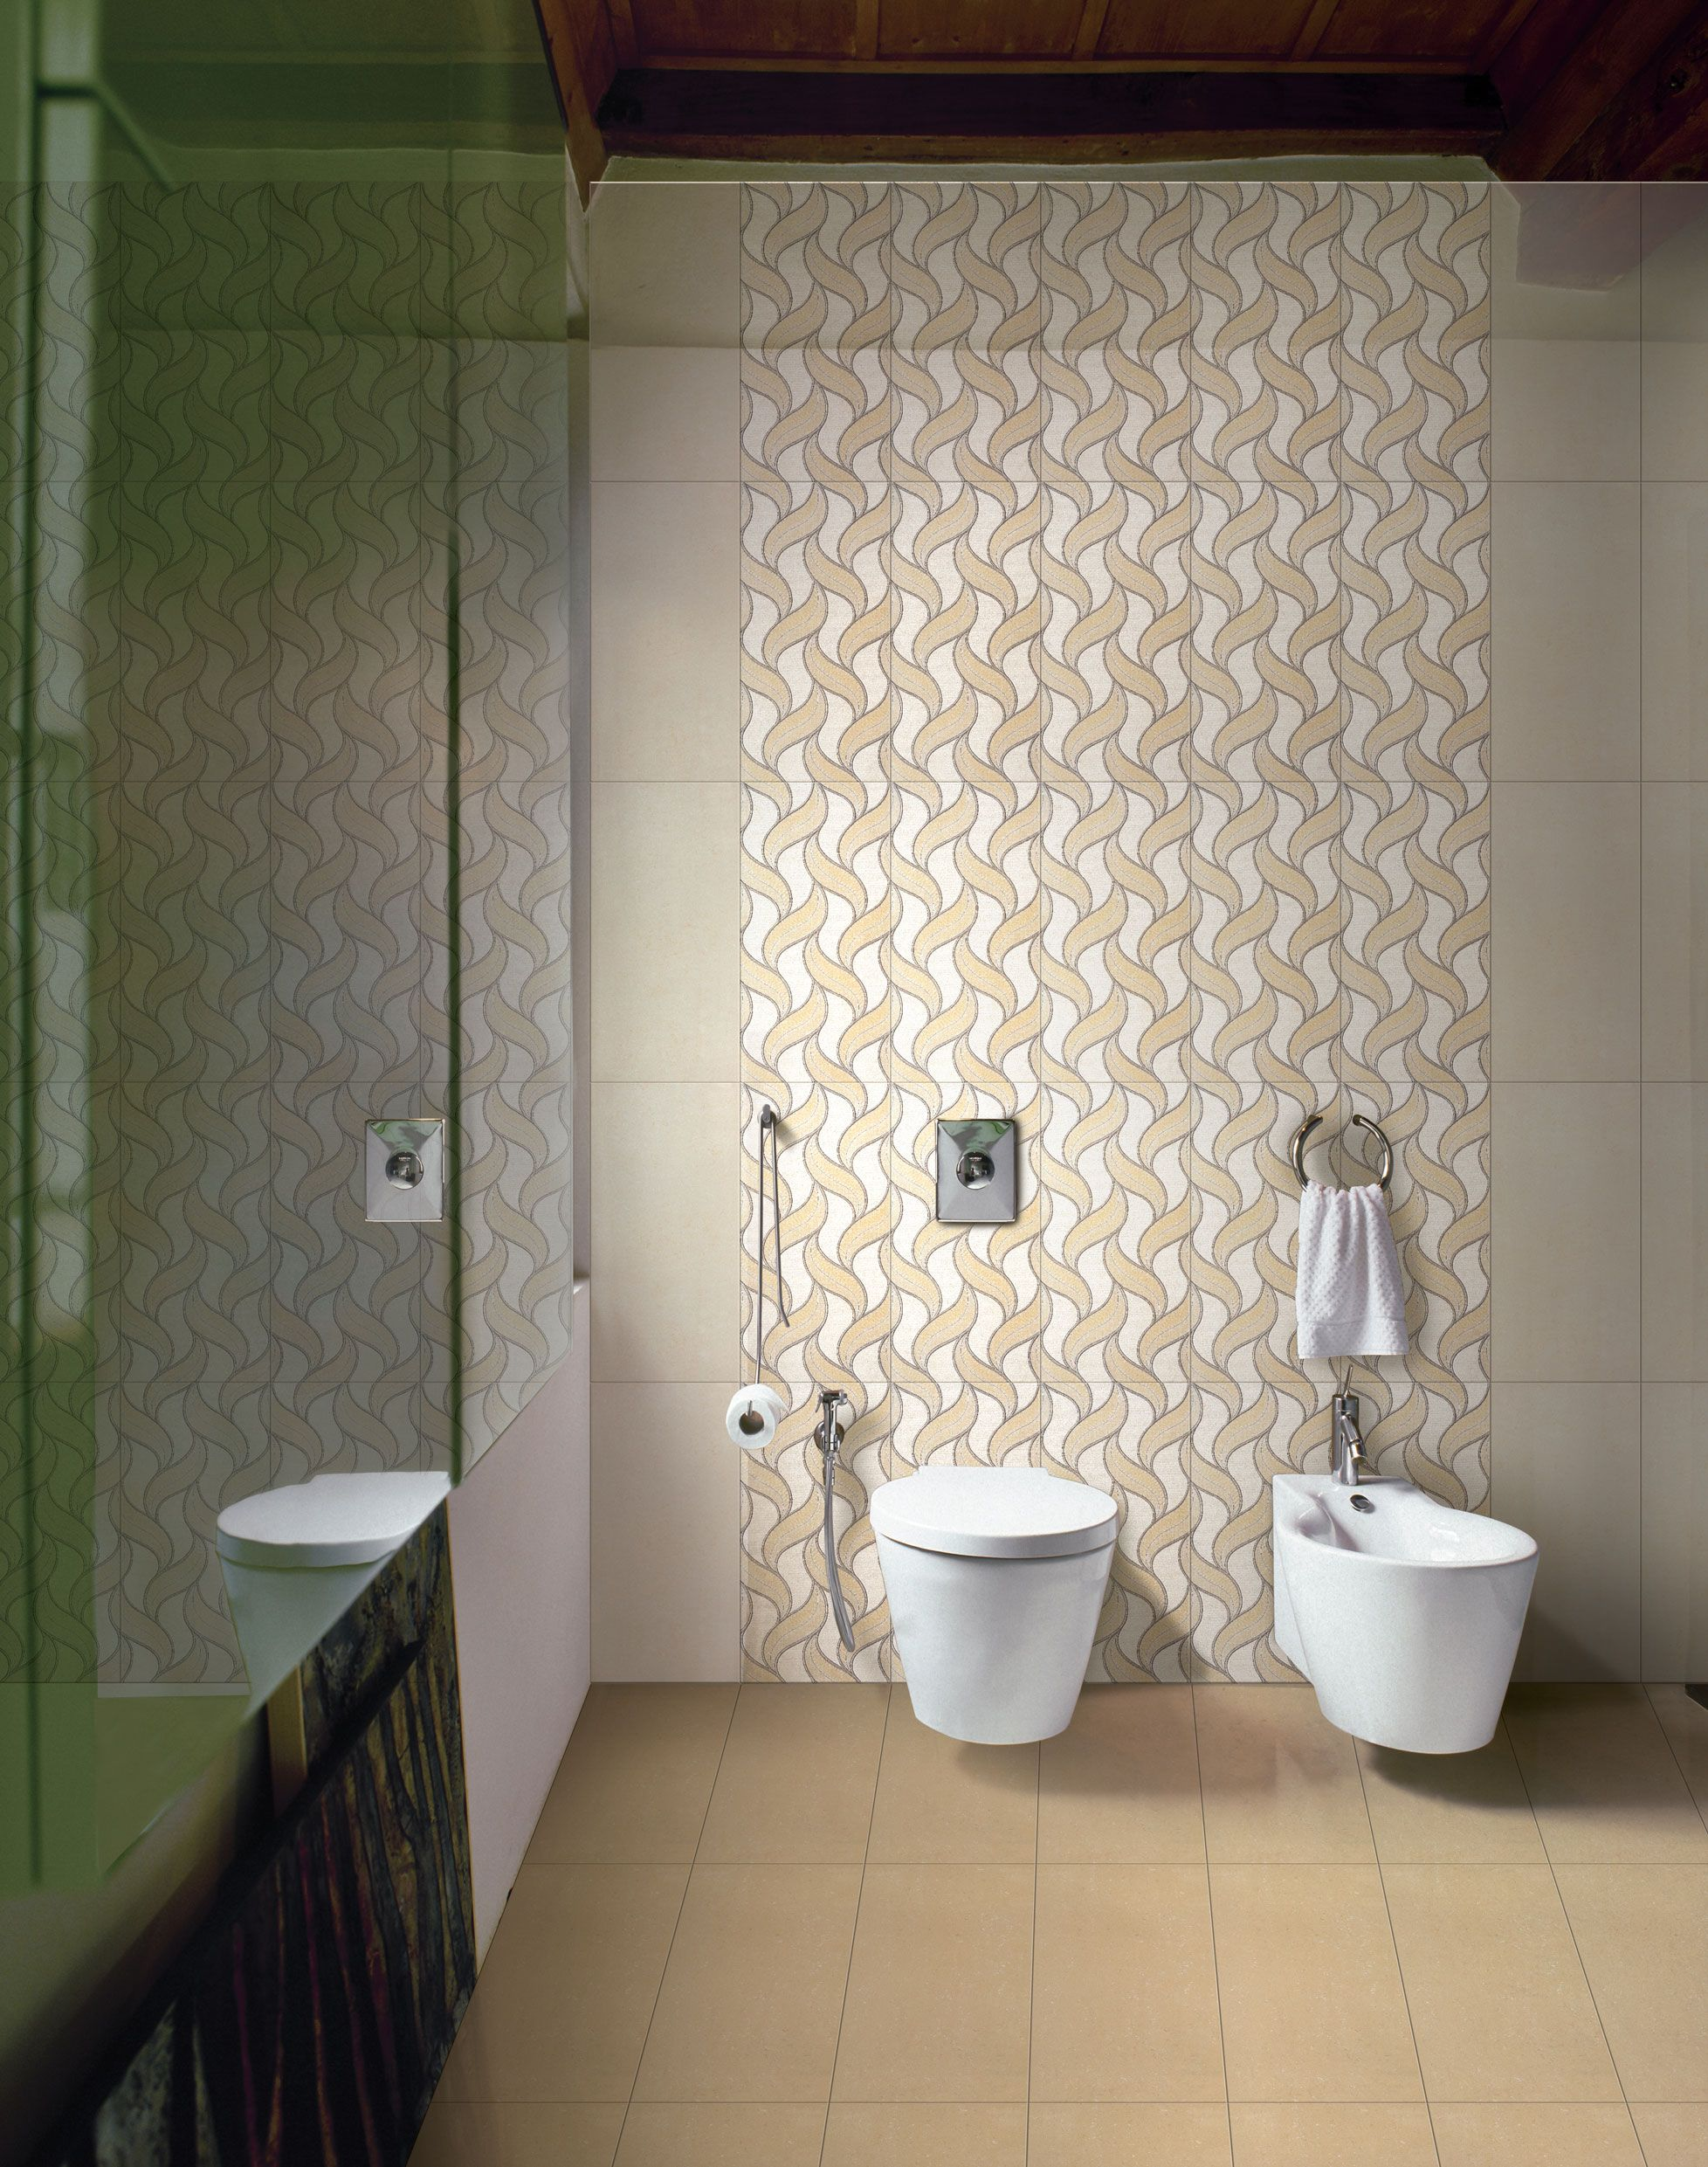 Buy designer floor wall tiles for bathroom bedroom for Indian bathroom decor